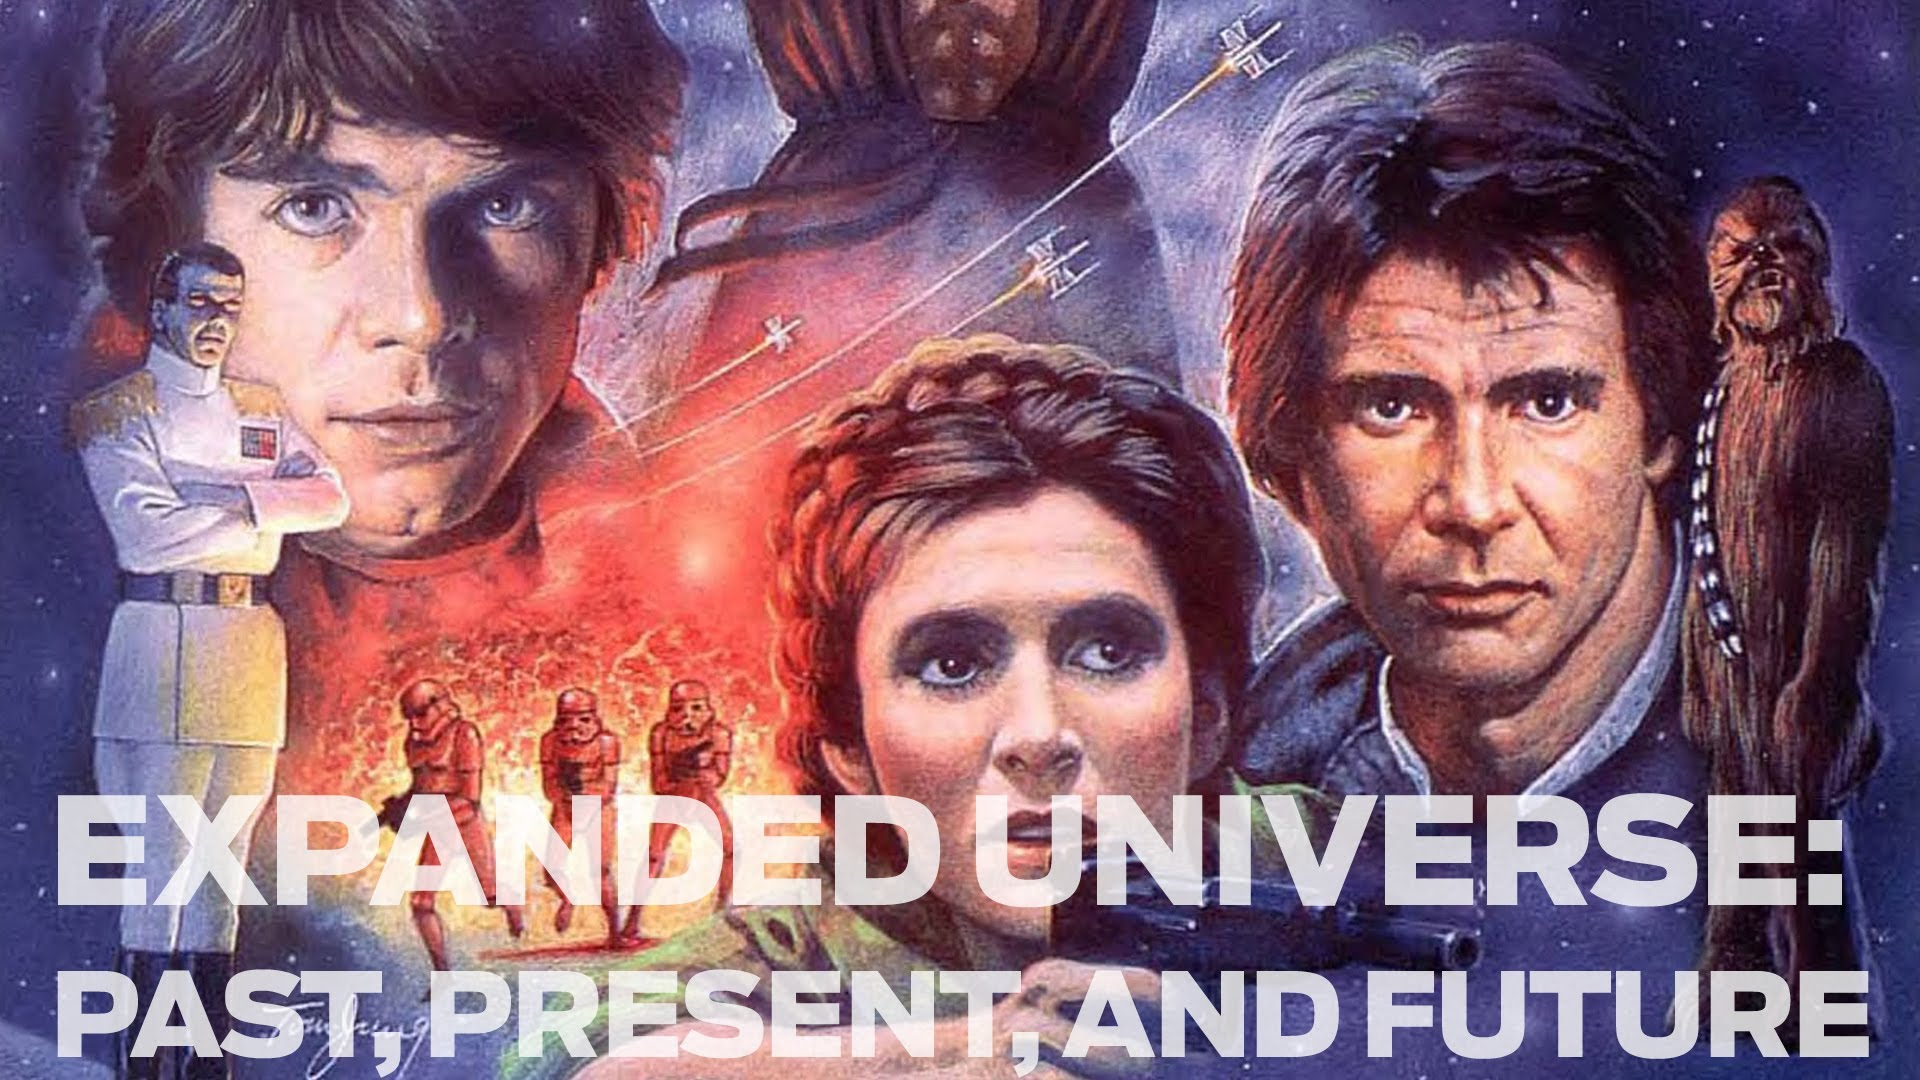 Disney Abandons the Old 'Star Wars' Expanded Universe, Will Connect All Creative Developments Going Forward